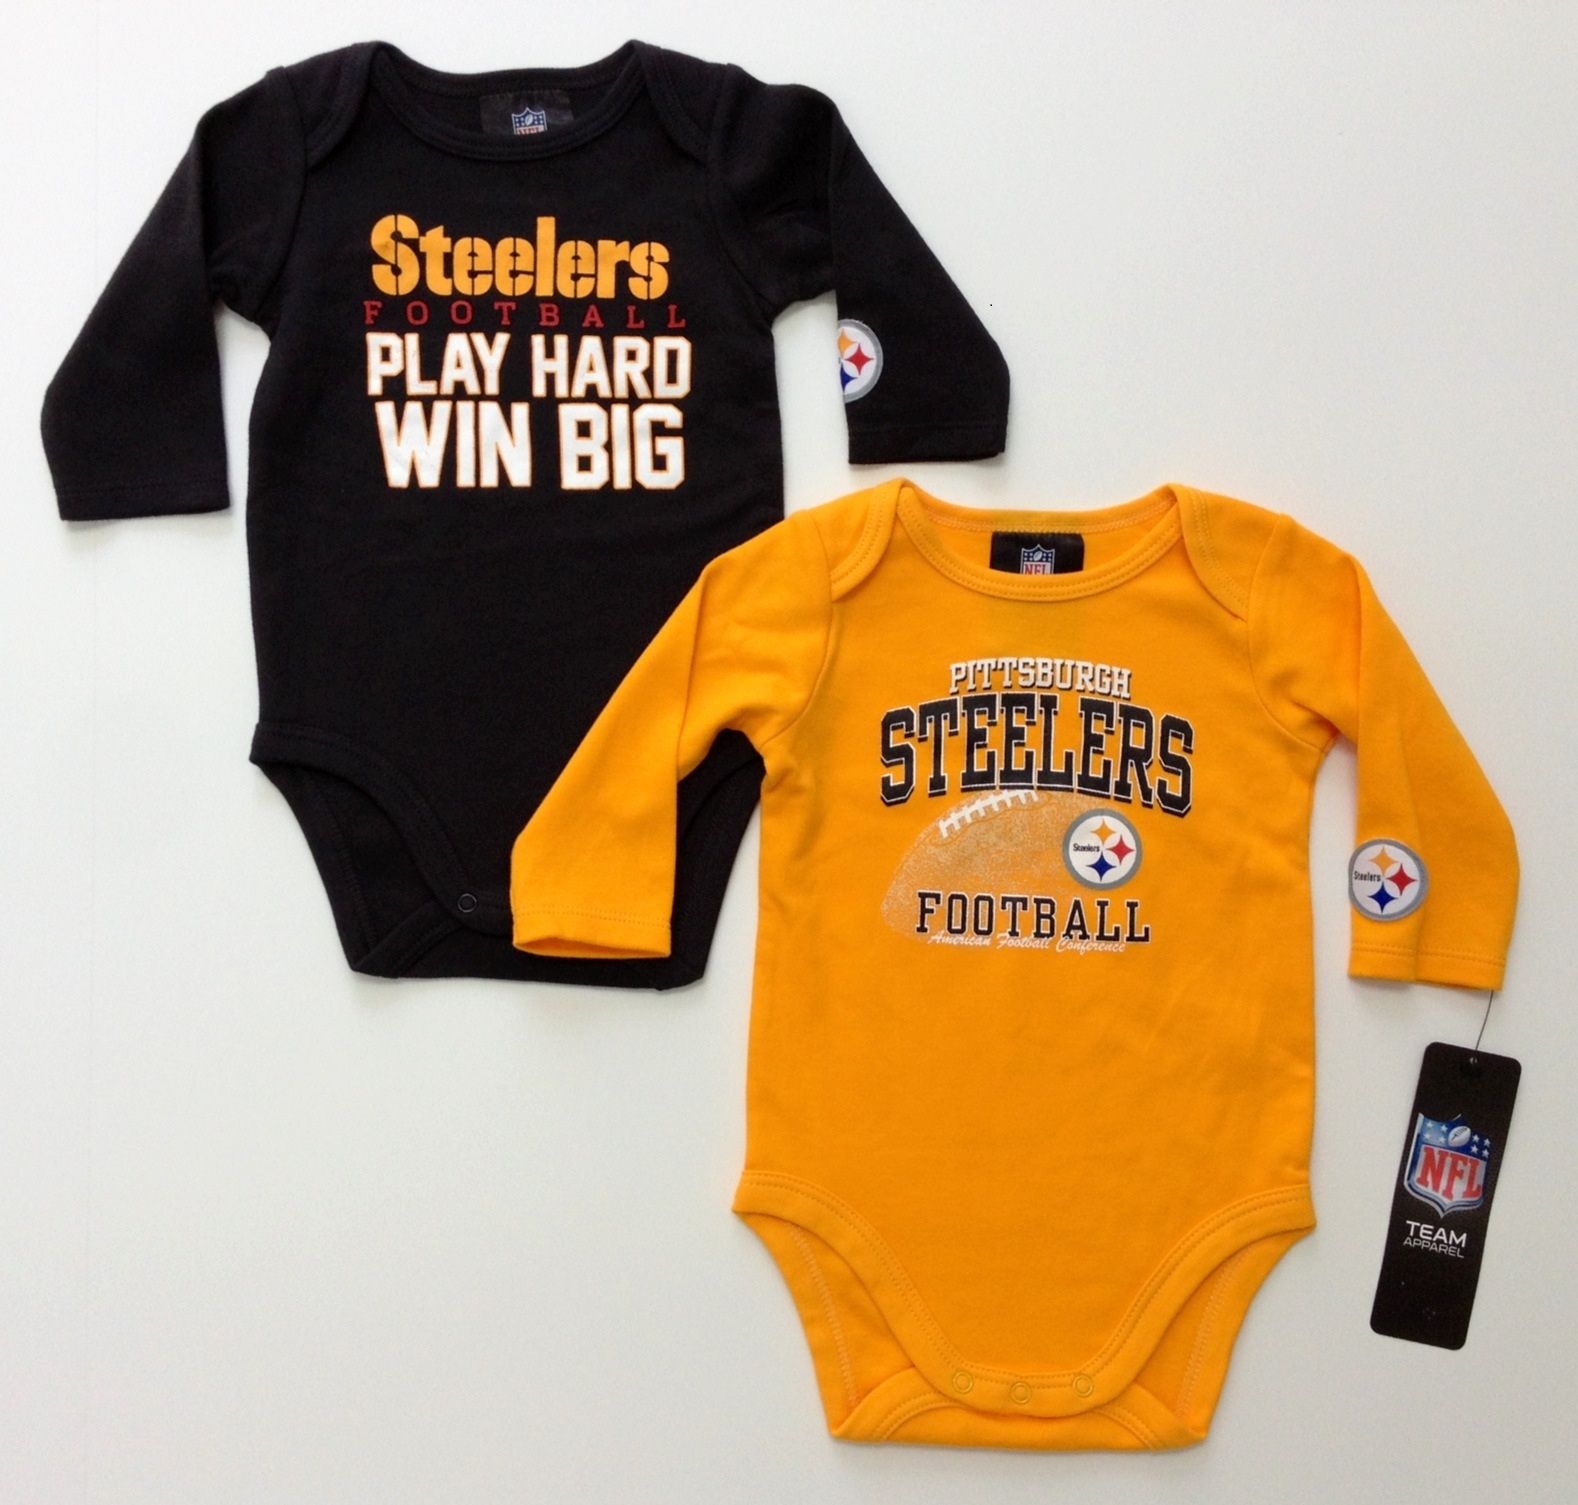 nfl-steelers-infant-black-gold-longsleeve-onesie-2-pack-j.jpg